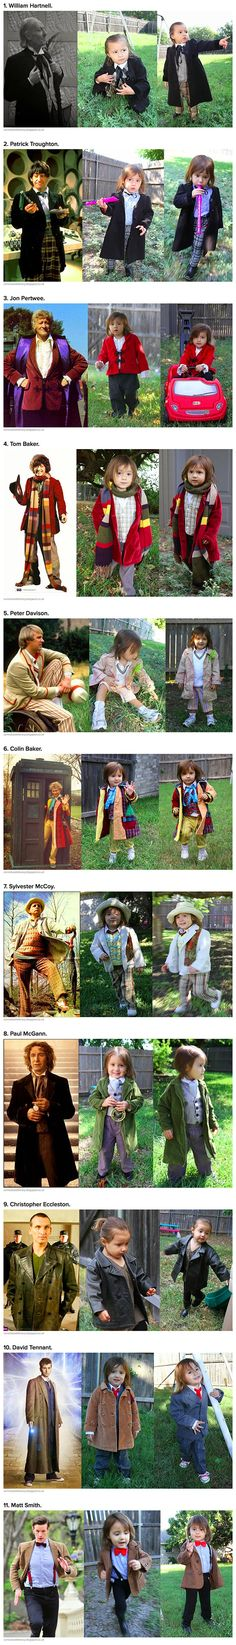 This geeky little kid decided to dress up as 11 of the doctors from Dr. Who. -- Cutest thing ever.